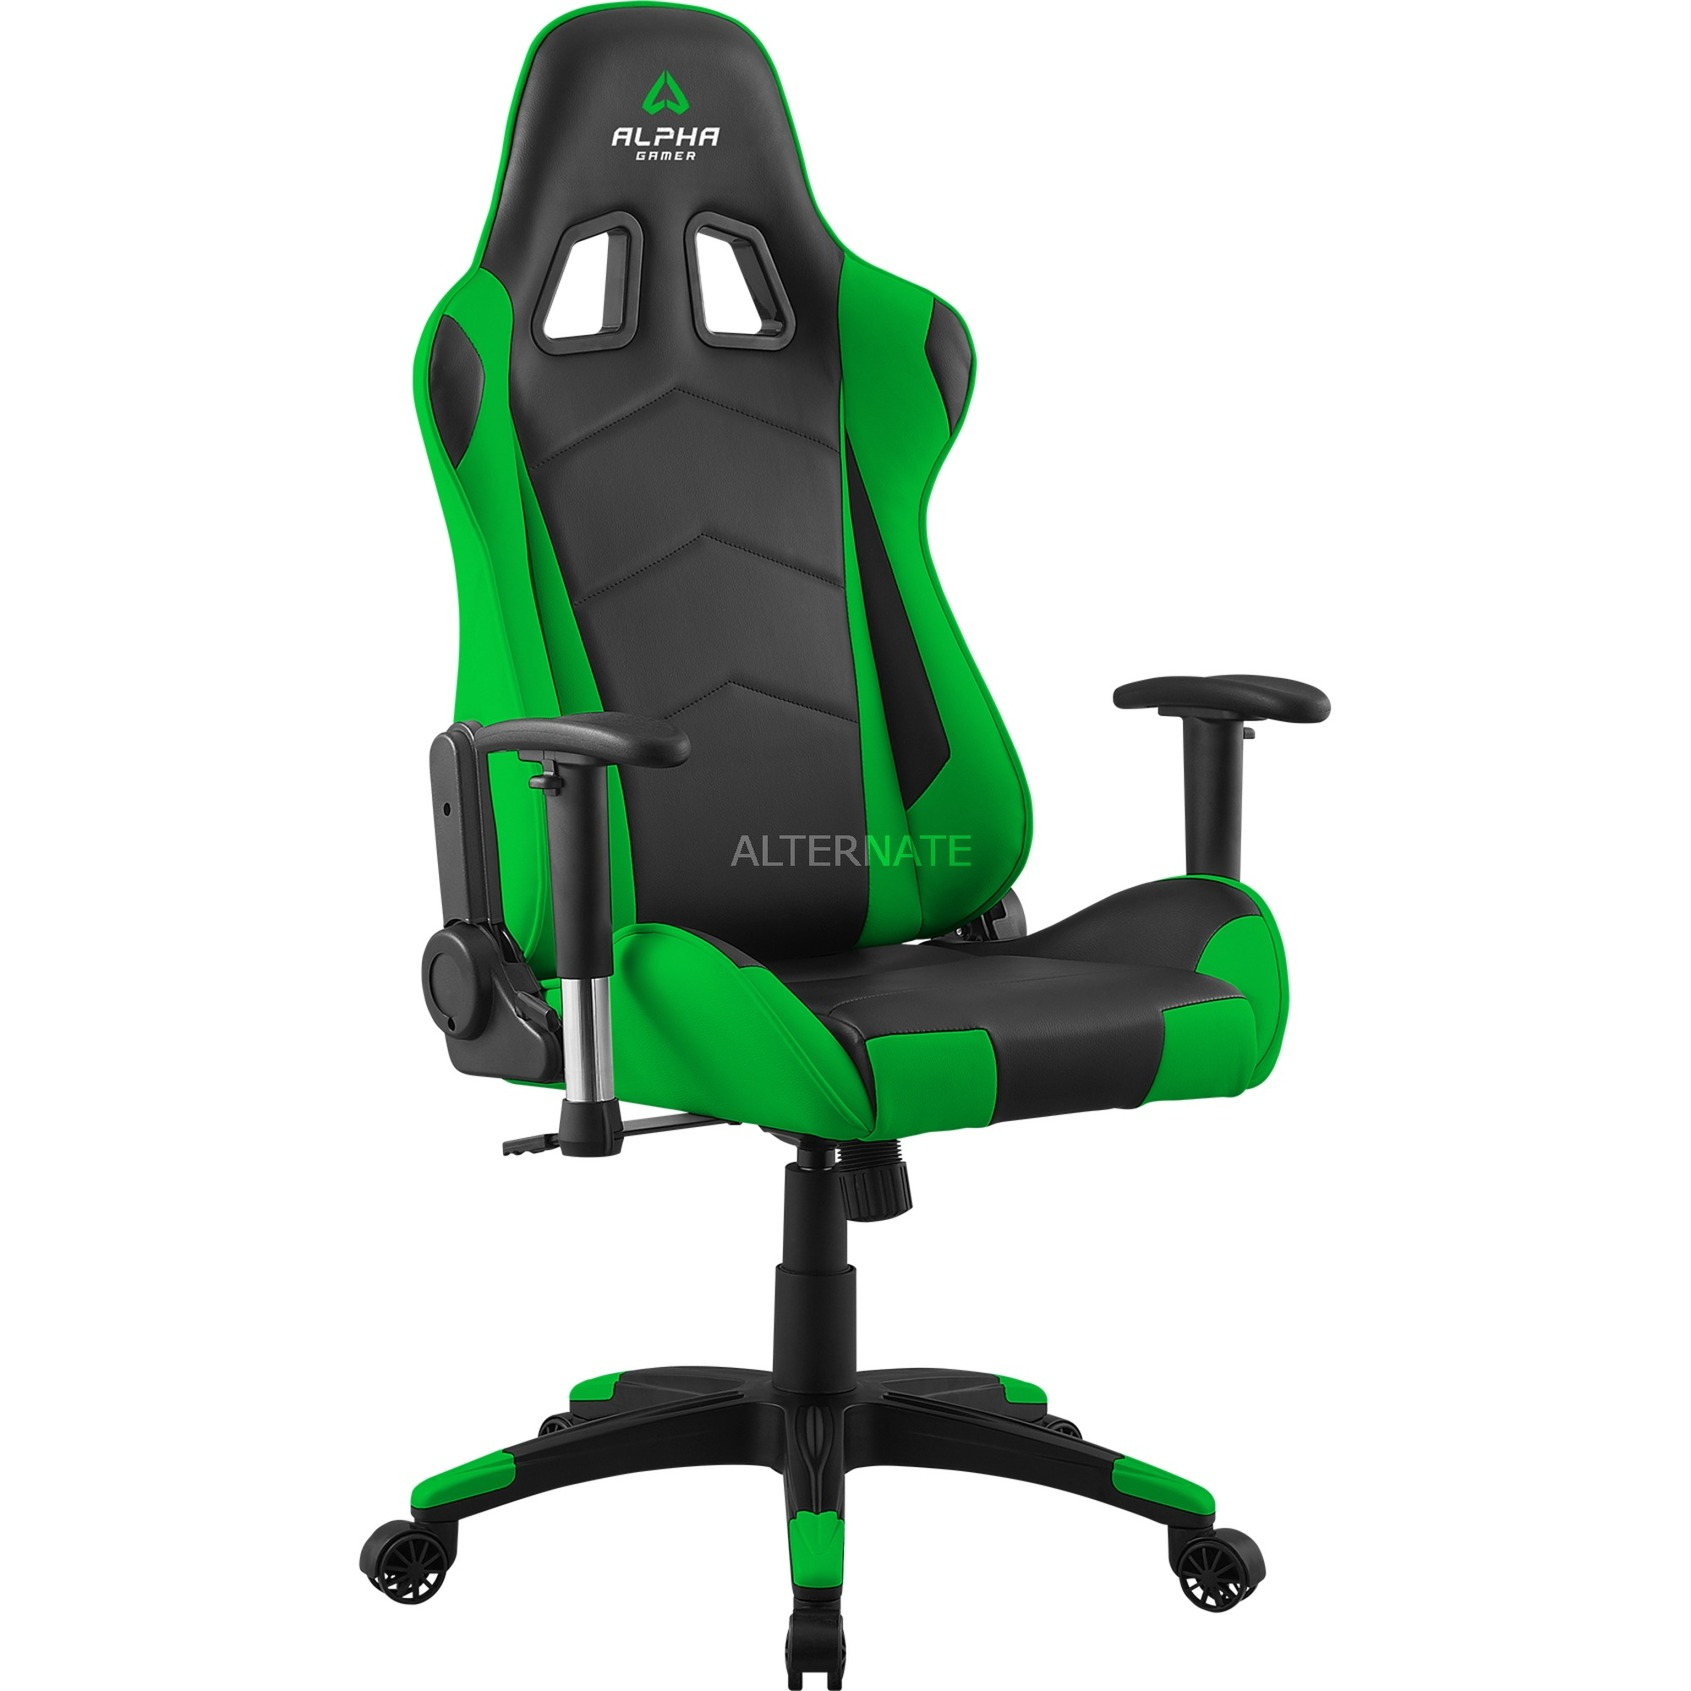 pulse-series-gaming-chair-spil-pladser